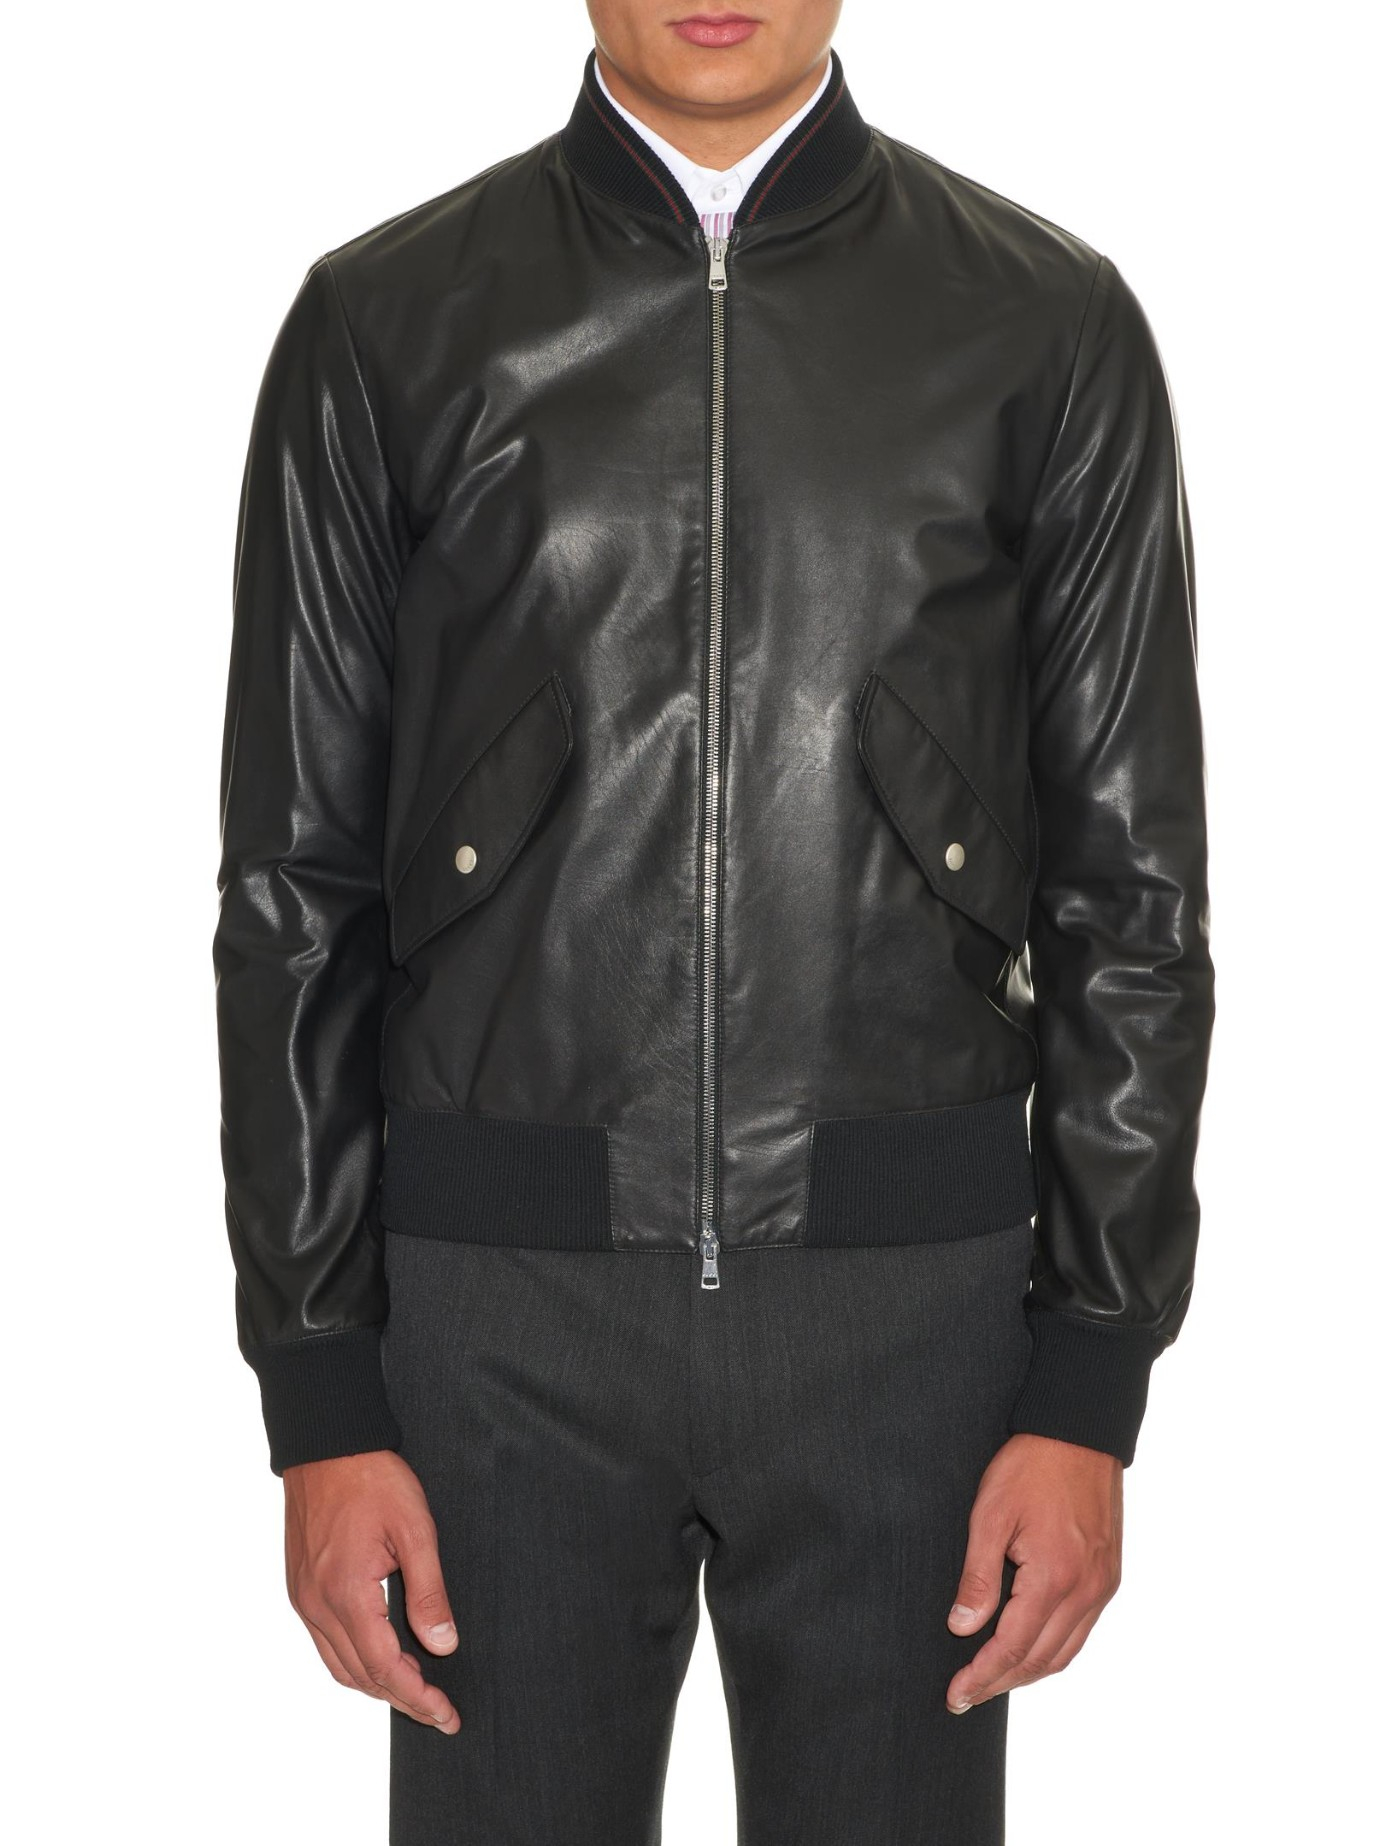 Gucci Lightweight Leather Jacket in Black for Men | Lyst